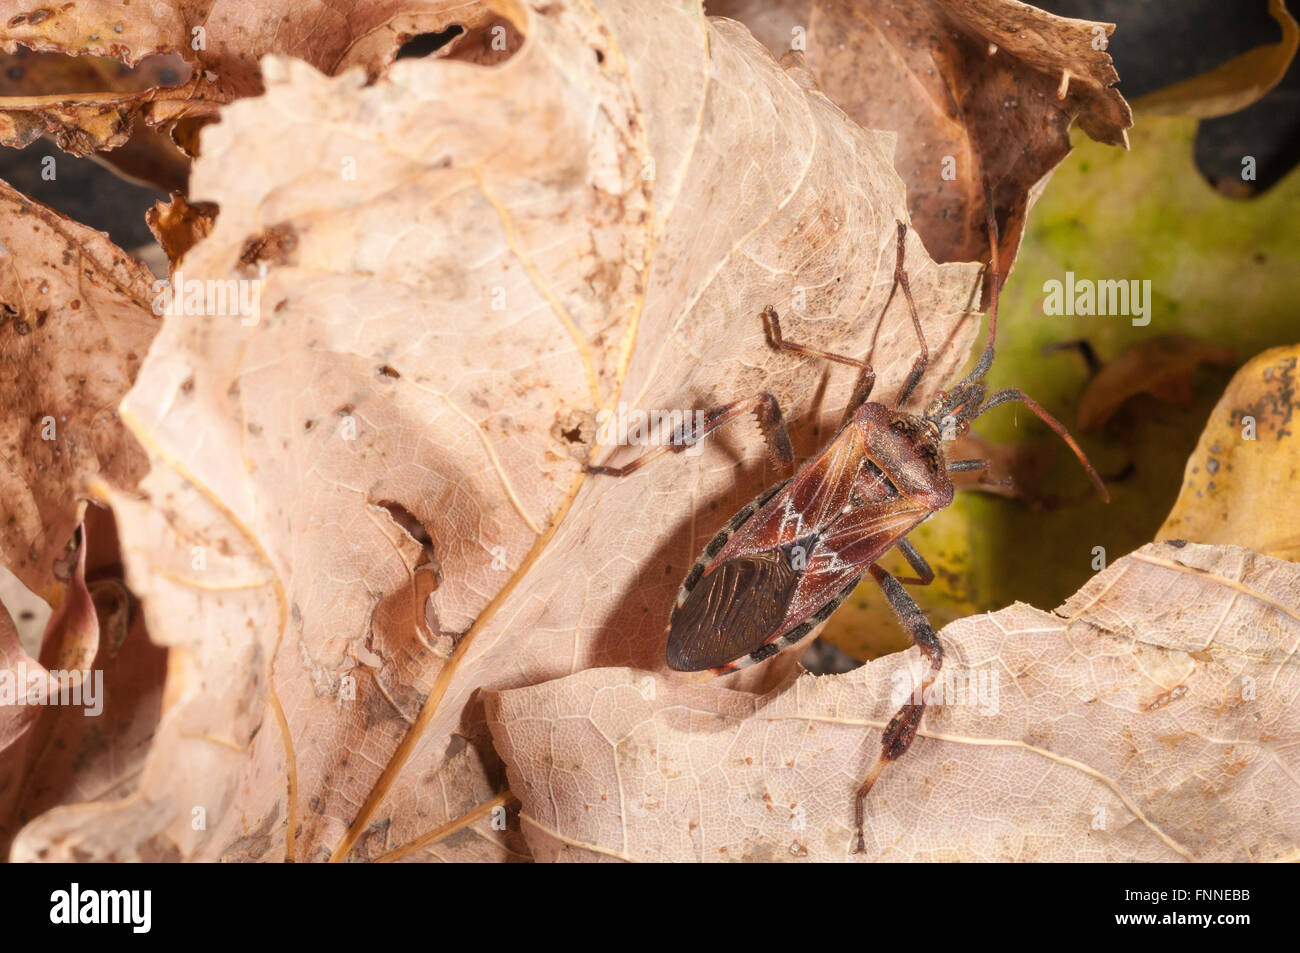 Western conifer seed bug, Leptoglossus occidentalis; native to western USA - Stock Image